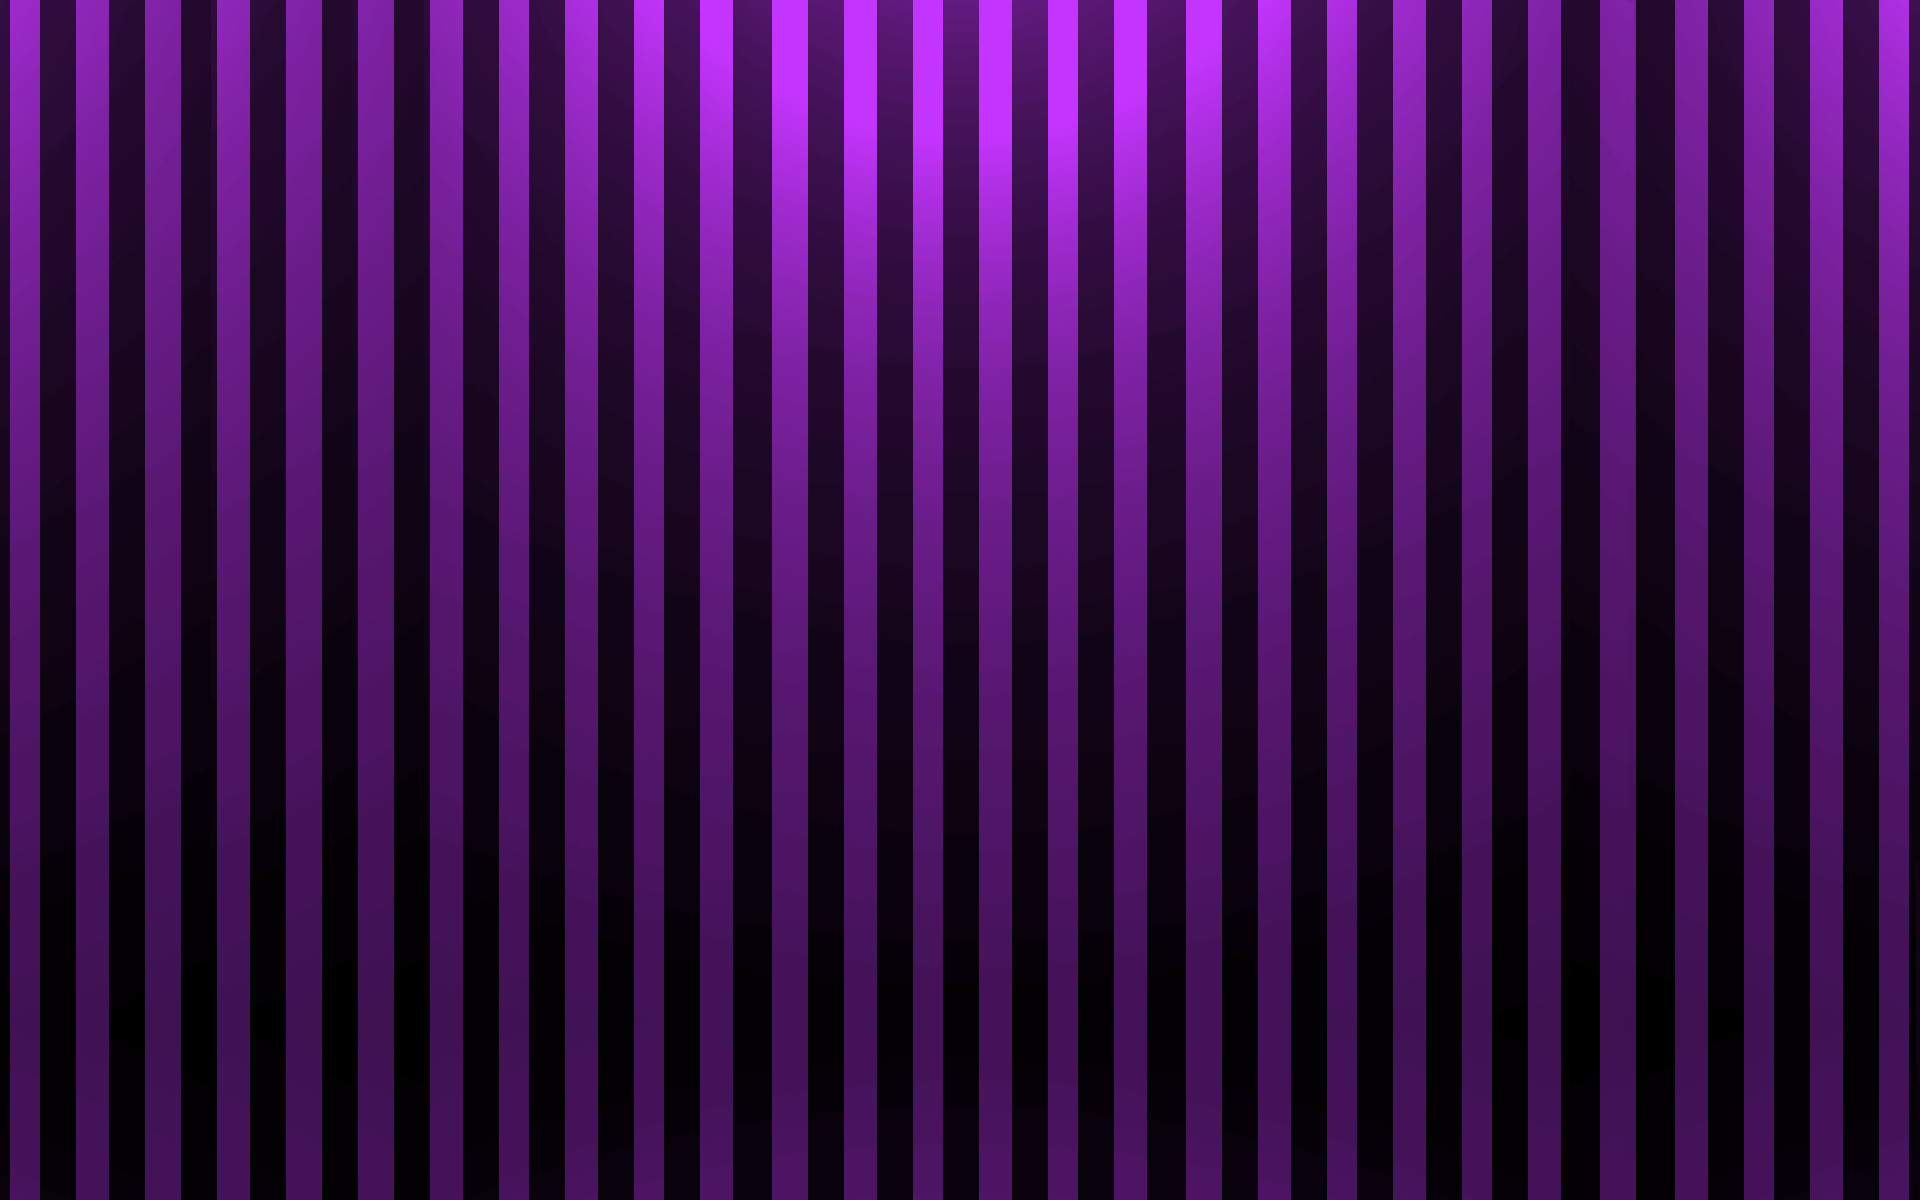 Res: 1920x1200, Awesome Violet Pictures – Violet Wallpapers for PC & Mac, Laptop, Tablet,  Mobile Phone